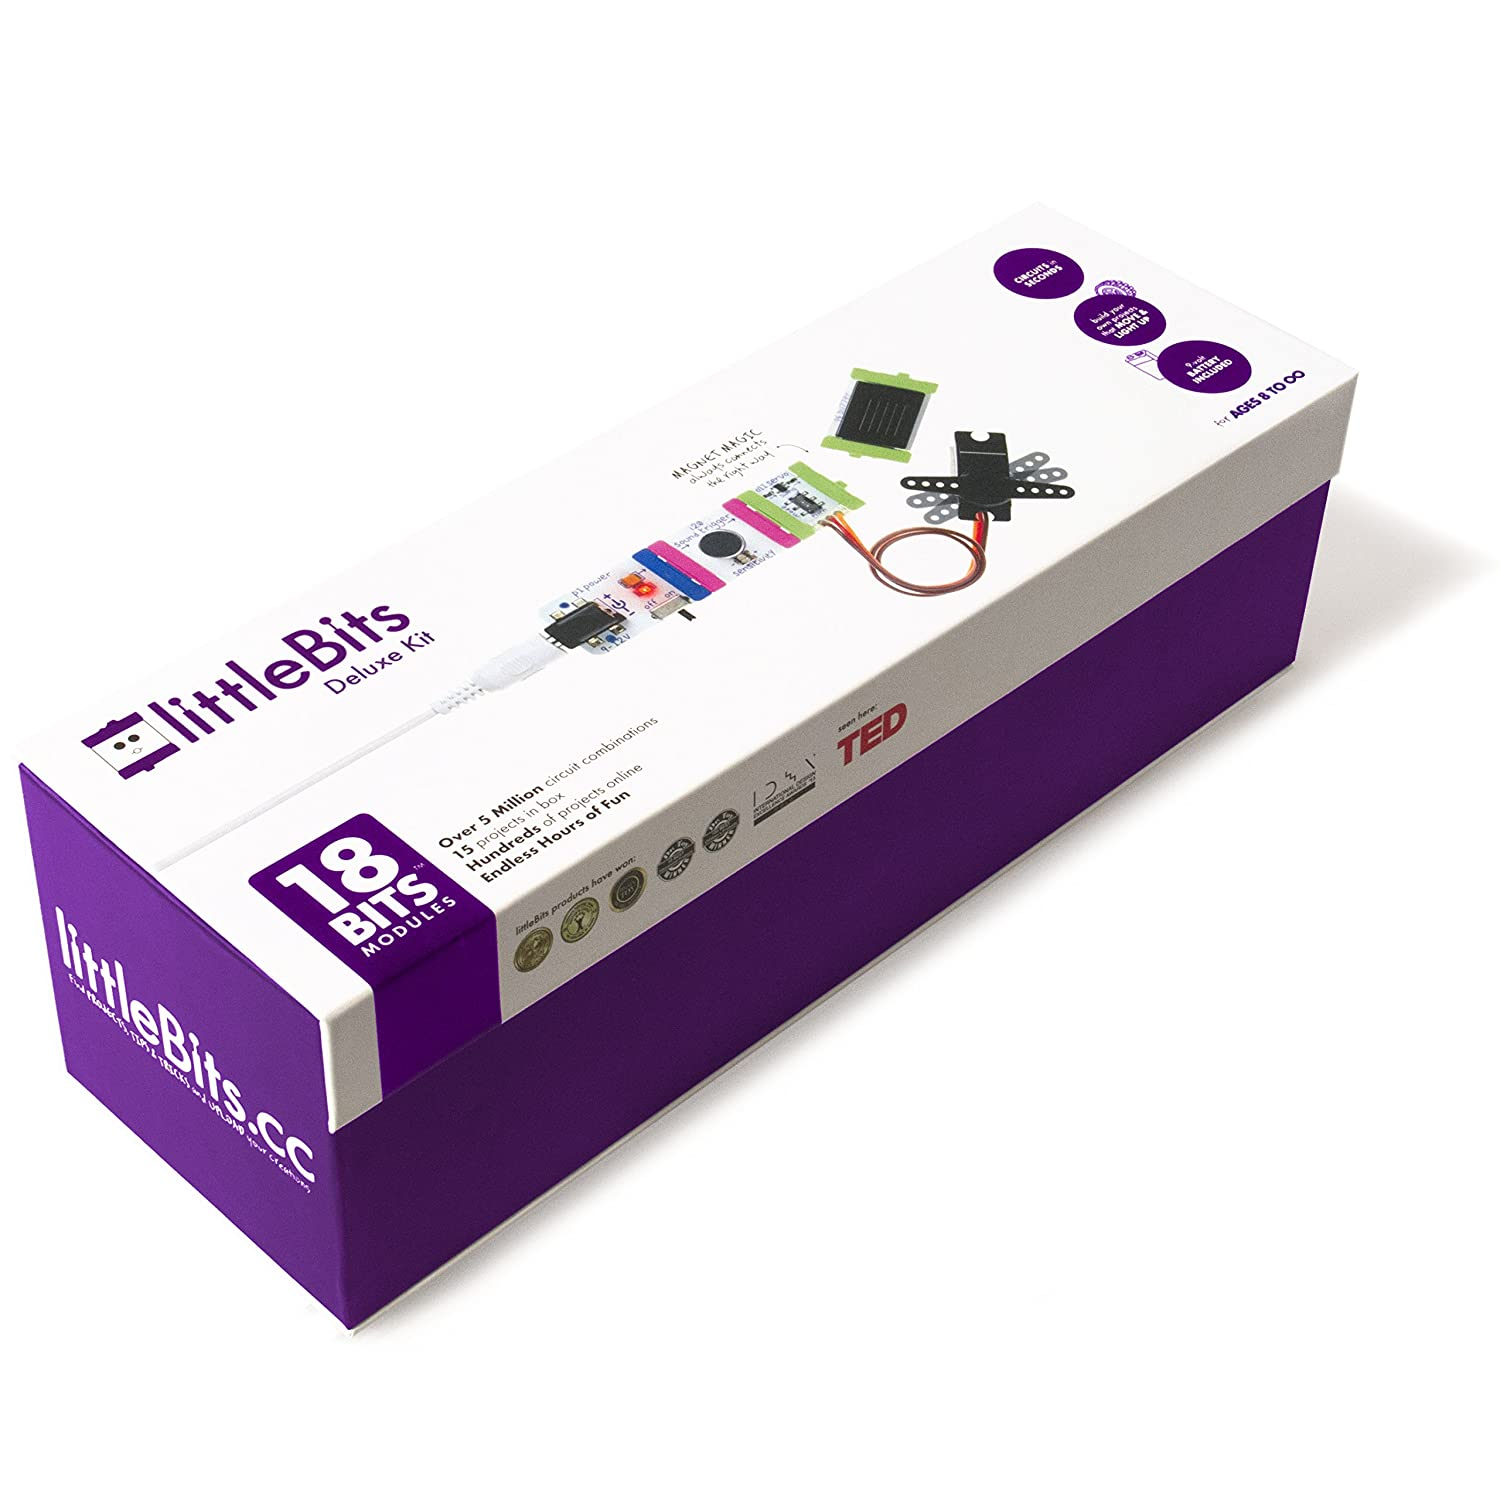 Littlebits Electronics Deluxe Kit Toys Games Squishy Circuits Light Up Your Play Dohr Creations